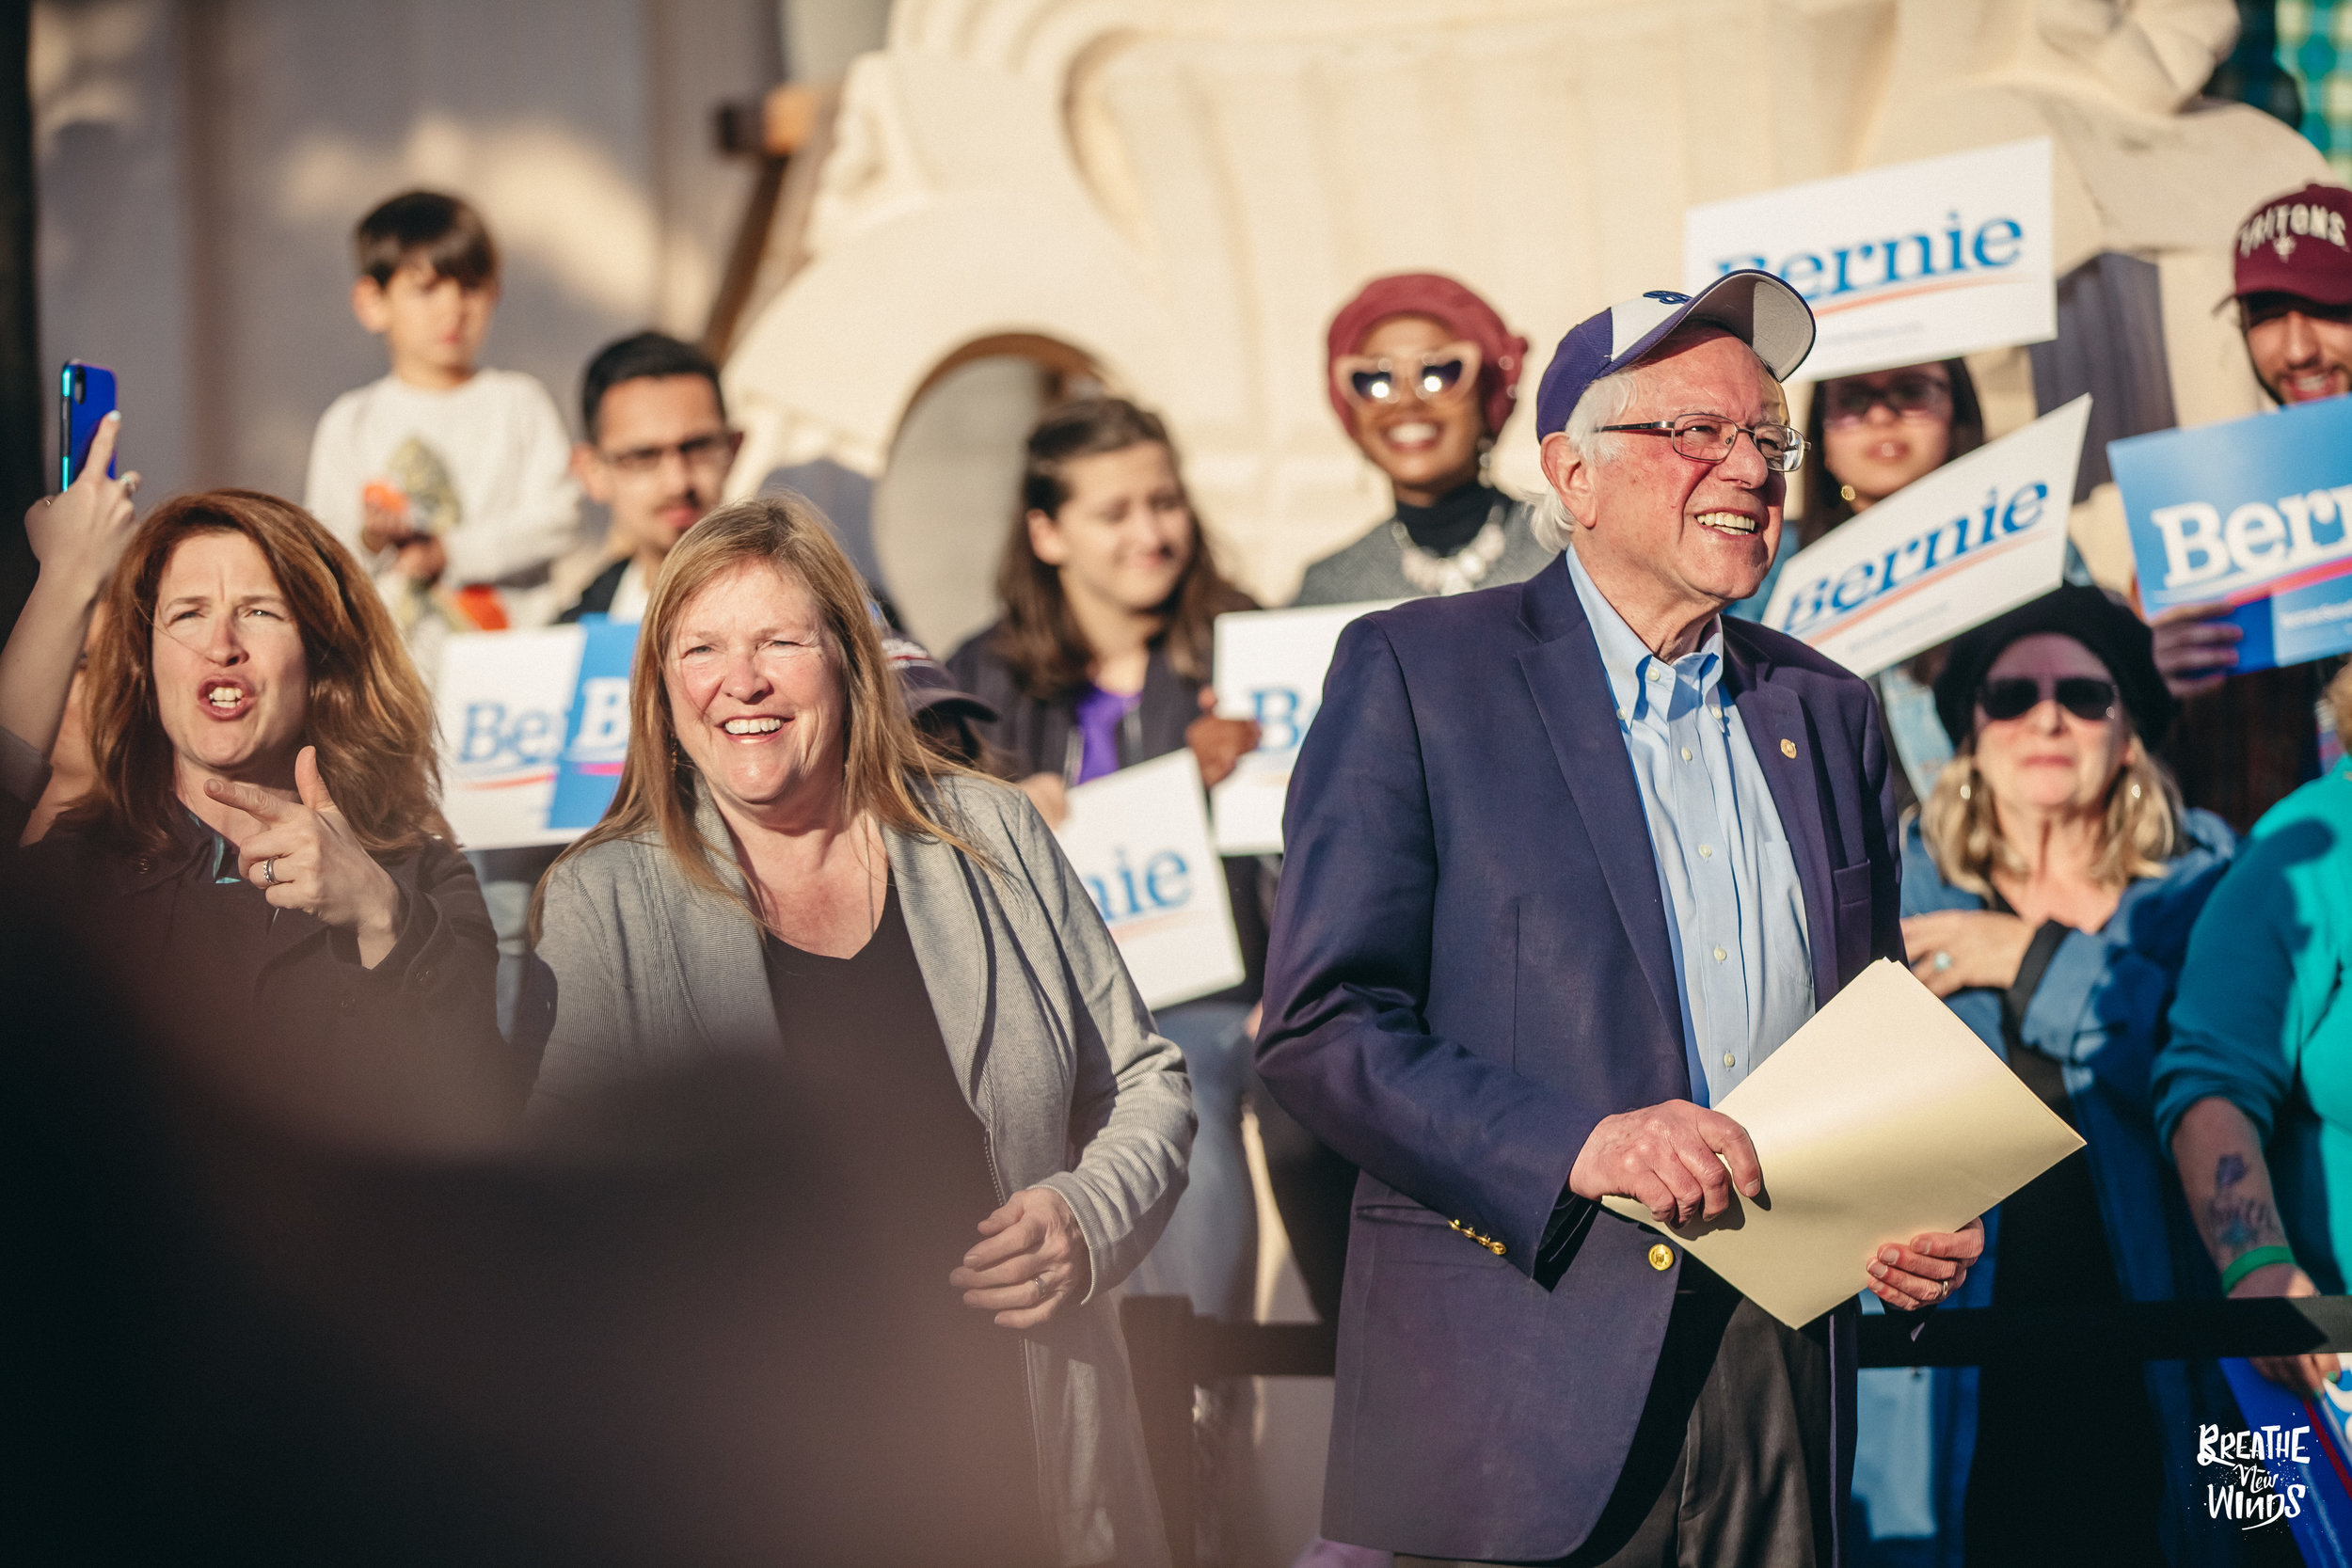 BernieInSD_22March2019-BernieAndFriends (30 of 78).jpg